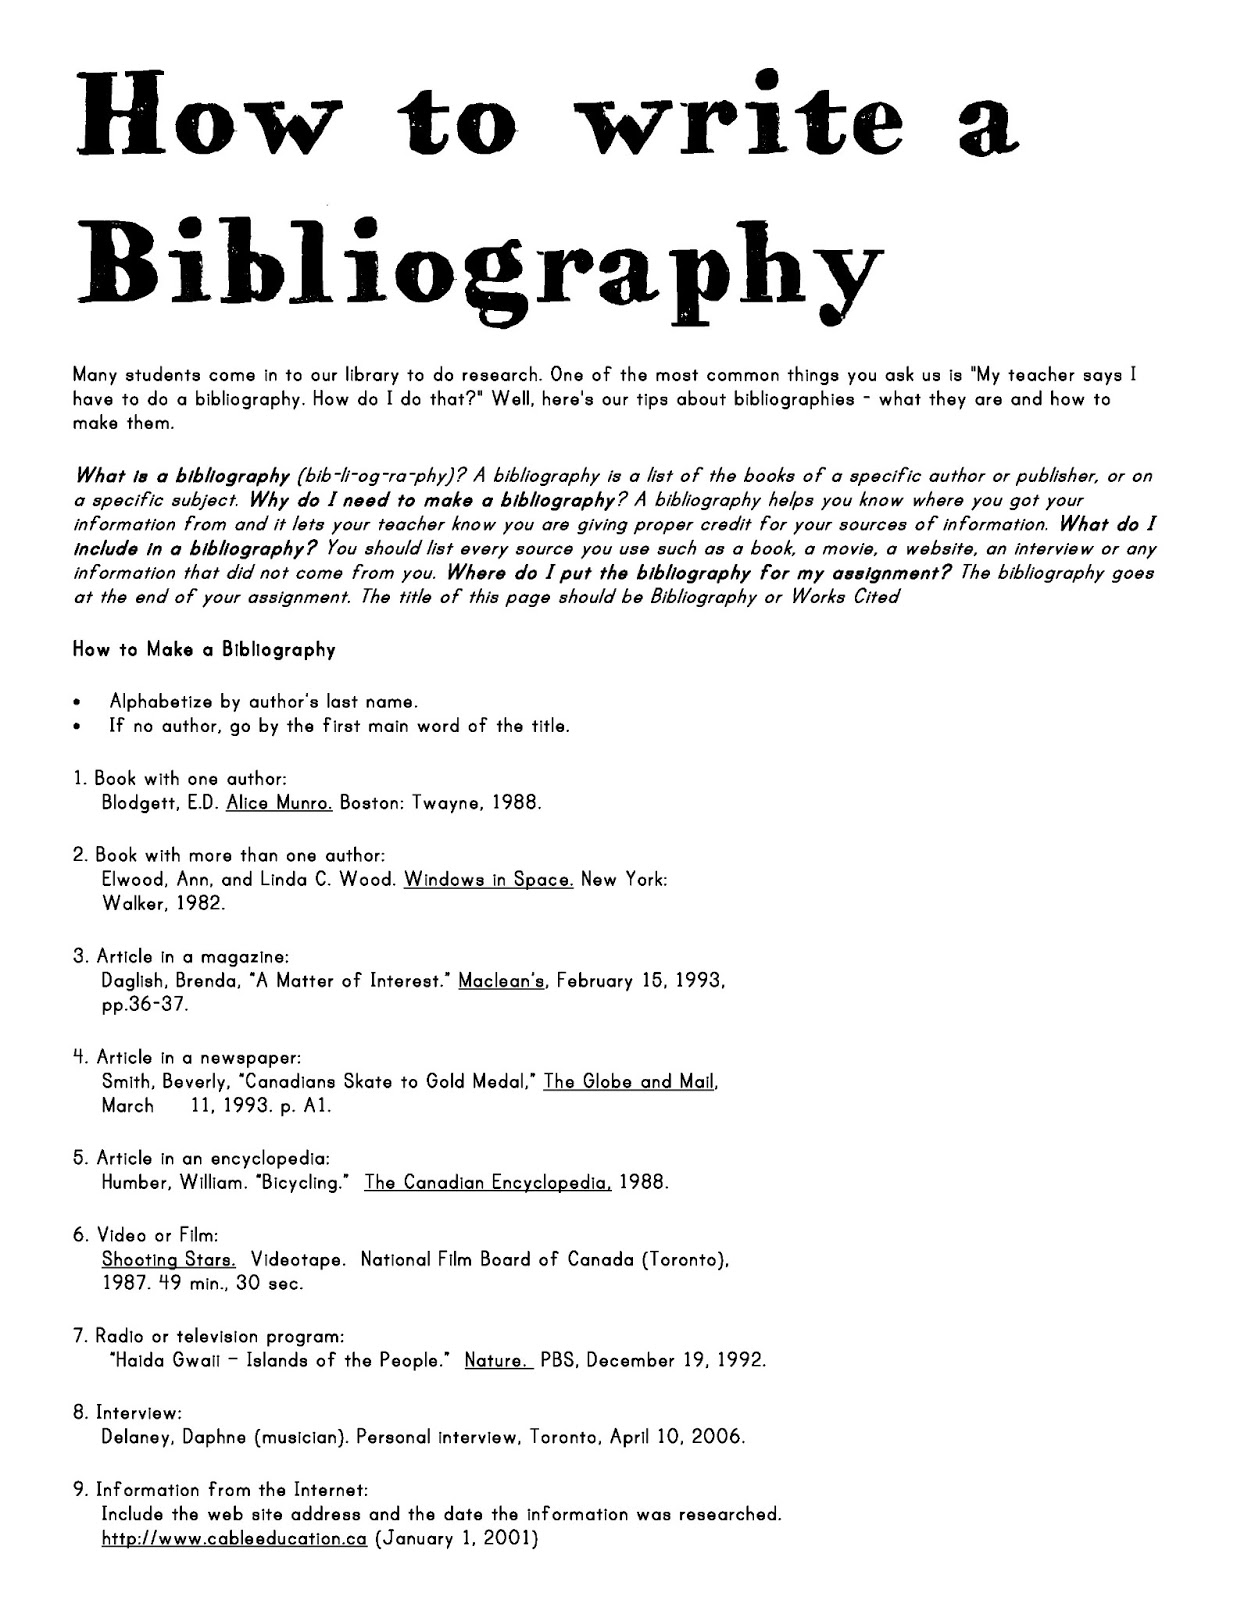 How to Write a Bibliography - YouTube